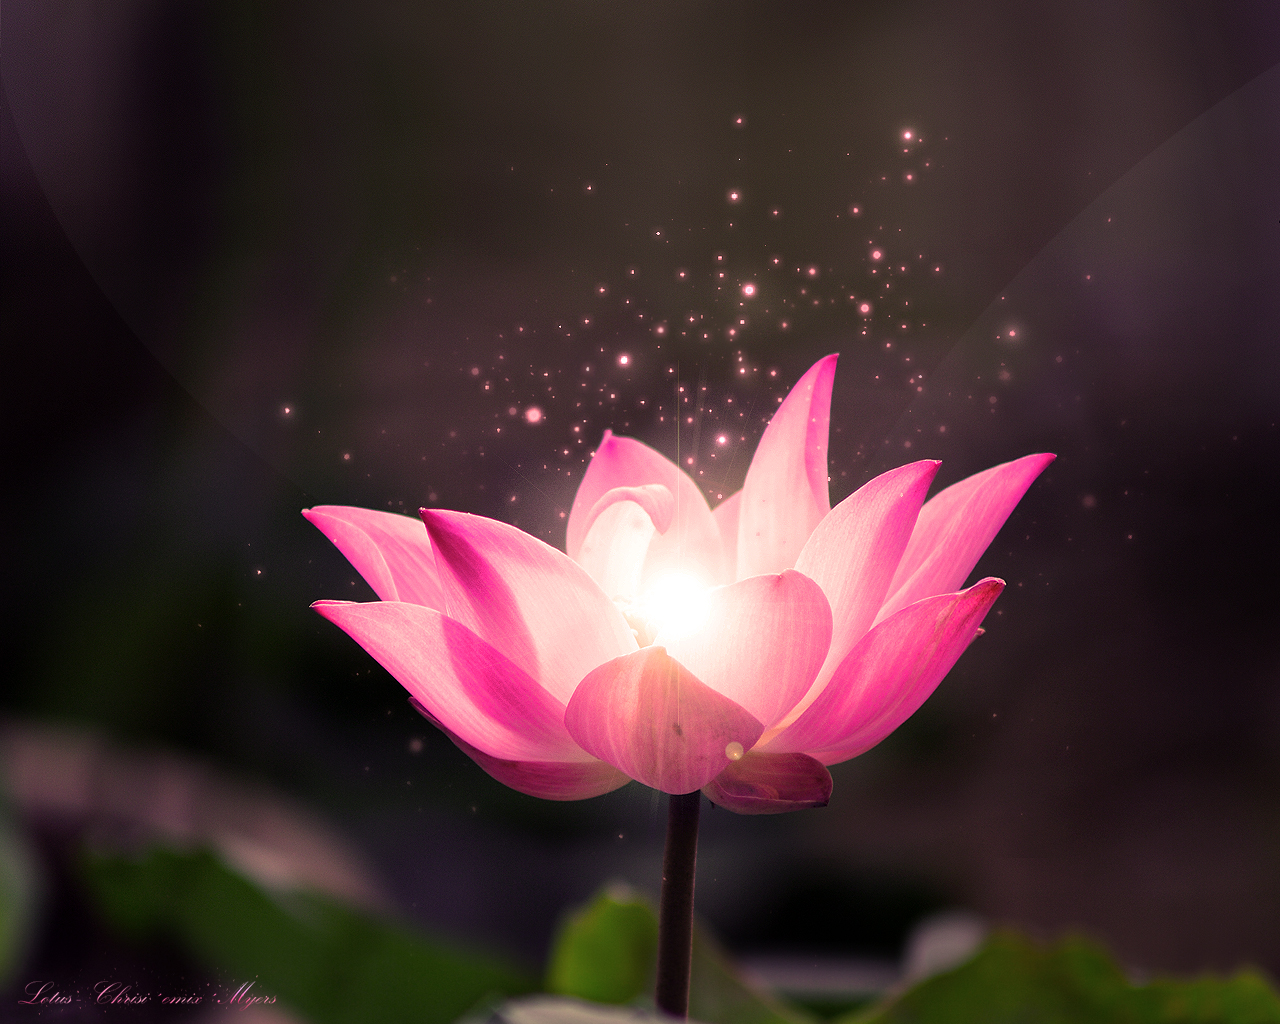 Image gallery for : lotus flower wallpaper